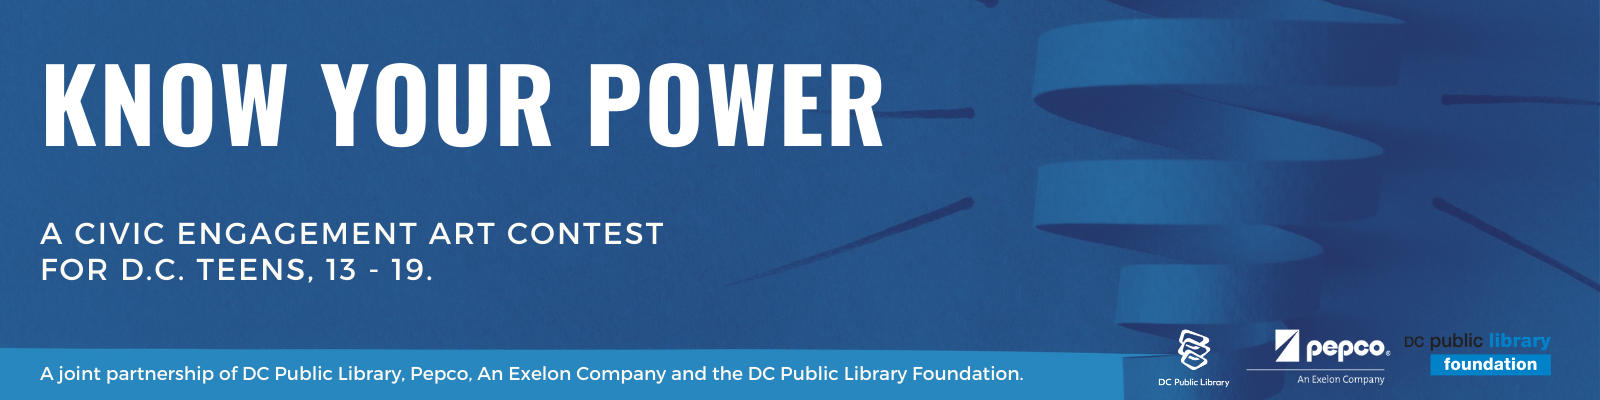 Know our Power - A Civid Engagement Art Contest for D.C. Teens, 13 - 19. A joint partnership of DC Public Library, Pepco, An Exelon Company and the DC Public Library Foundation